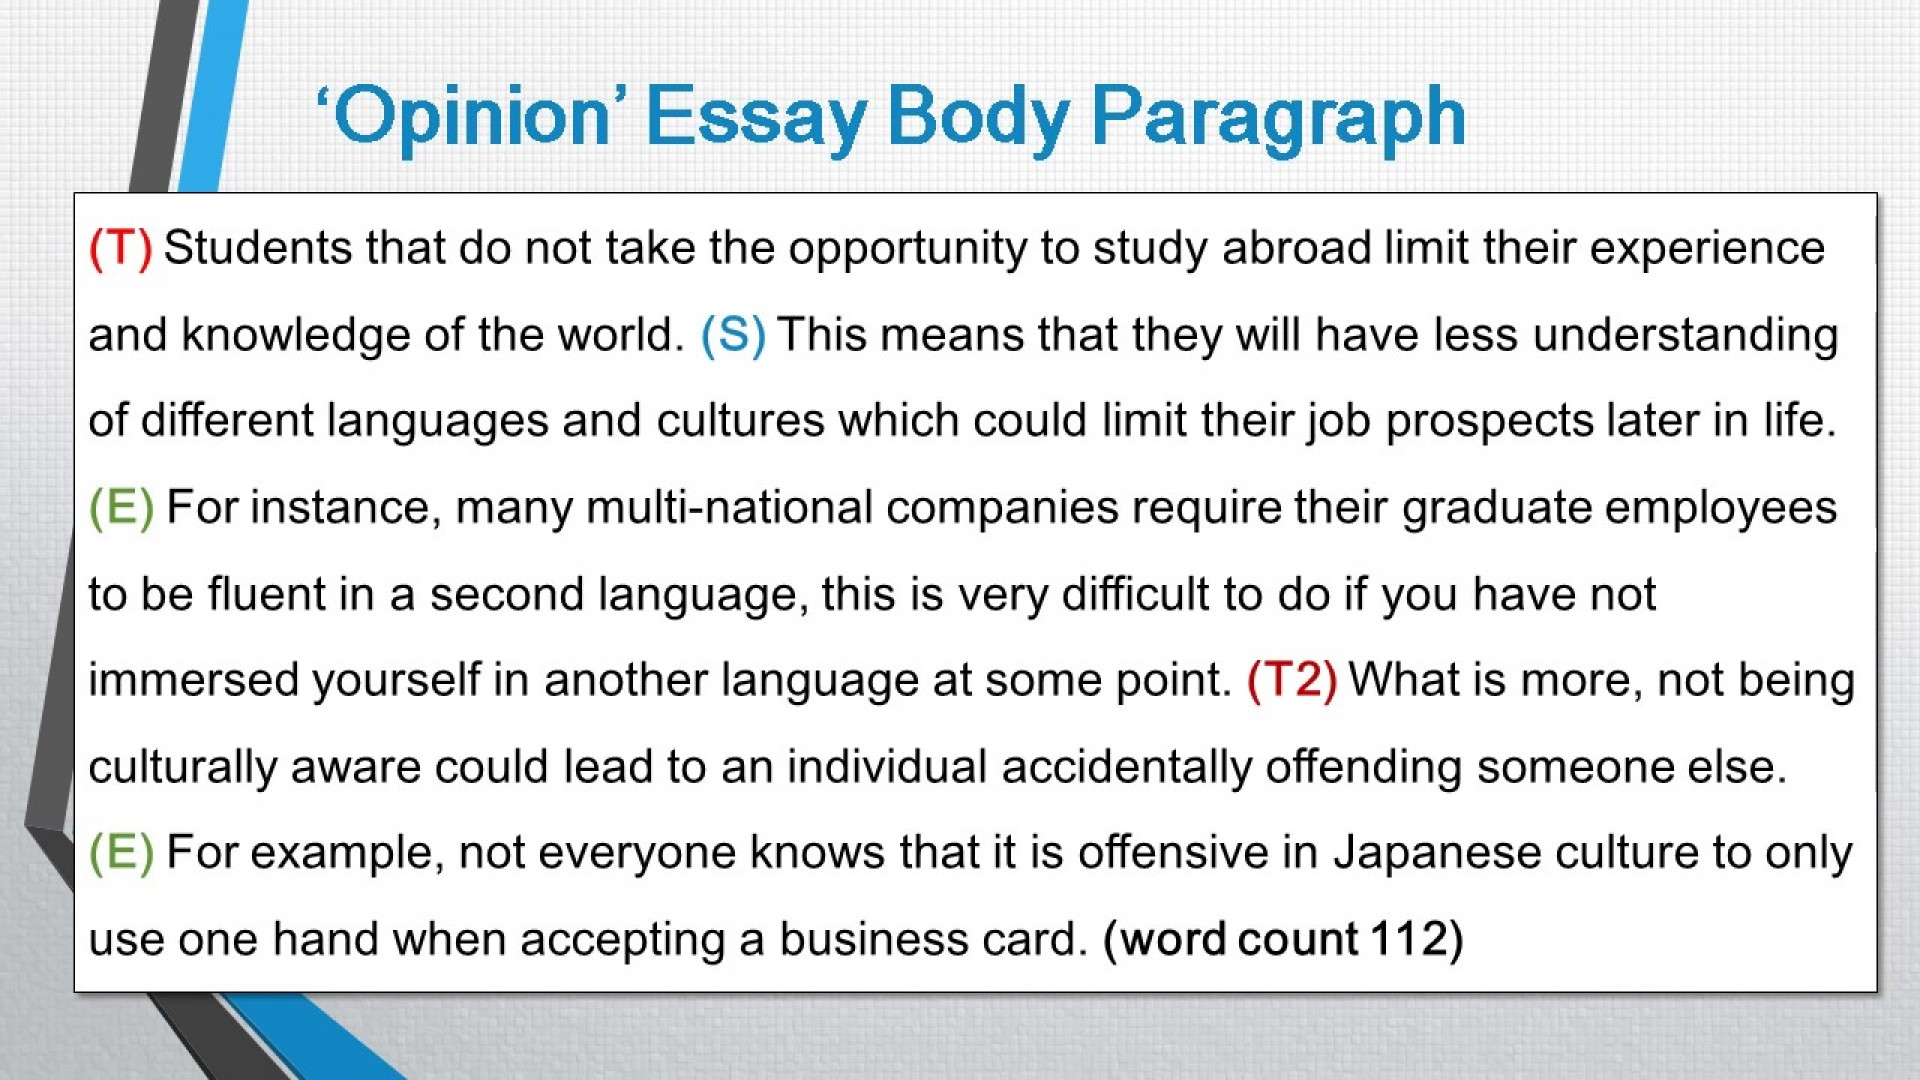 011 Maxresdefault Essay Example Ways To Conclude Wonderful An End Argumentative 5 Without Saying In Conclusion 1920